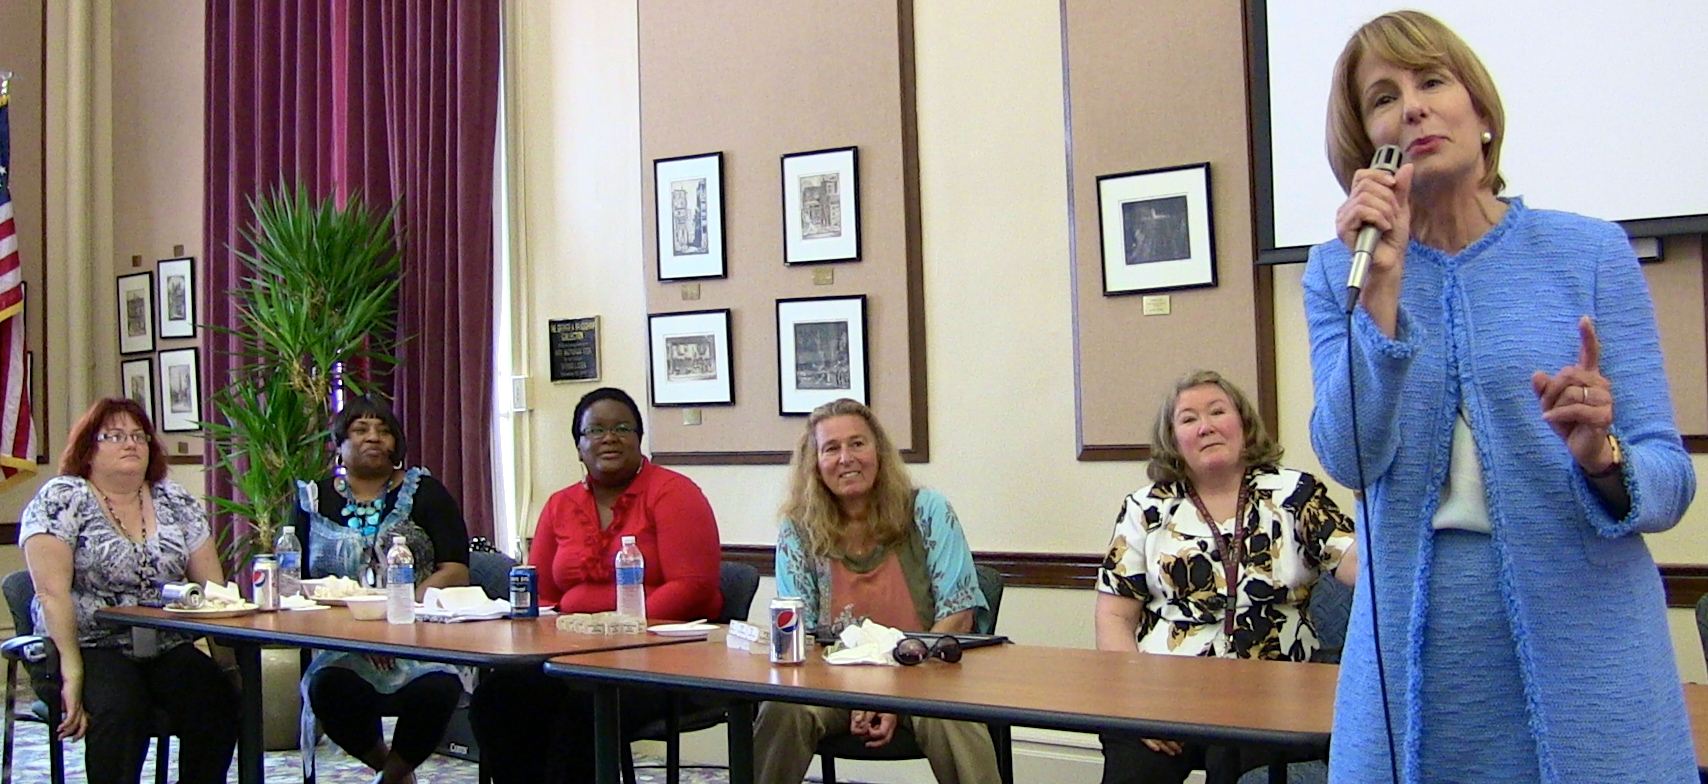 new haven federation of teachers collective Highlights from his speech to the american federation of teachers  in  washington, dc, new york, new haven, tampa, pittsburgh,  he told a story  of the time when collective bargaining for teachers was just beginning.